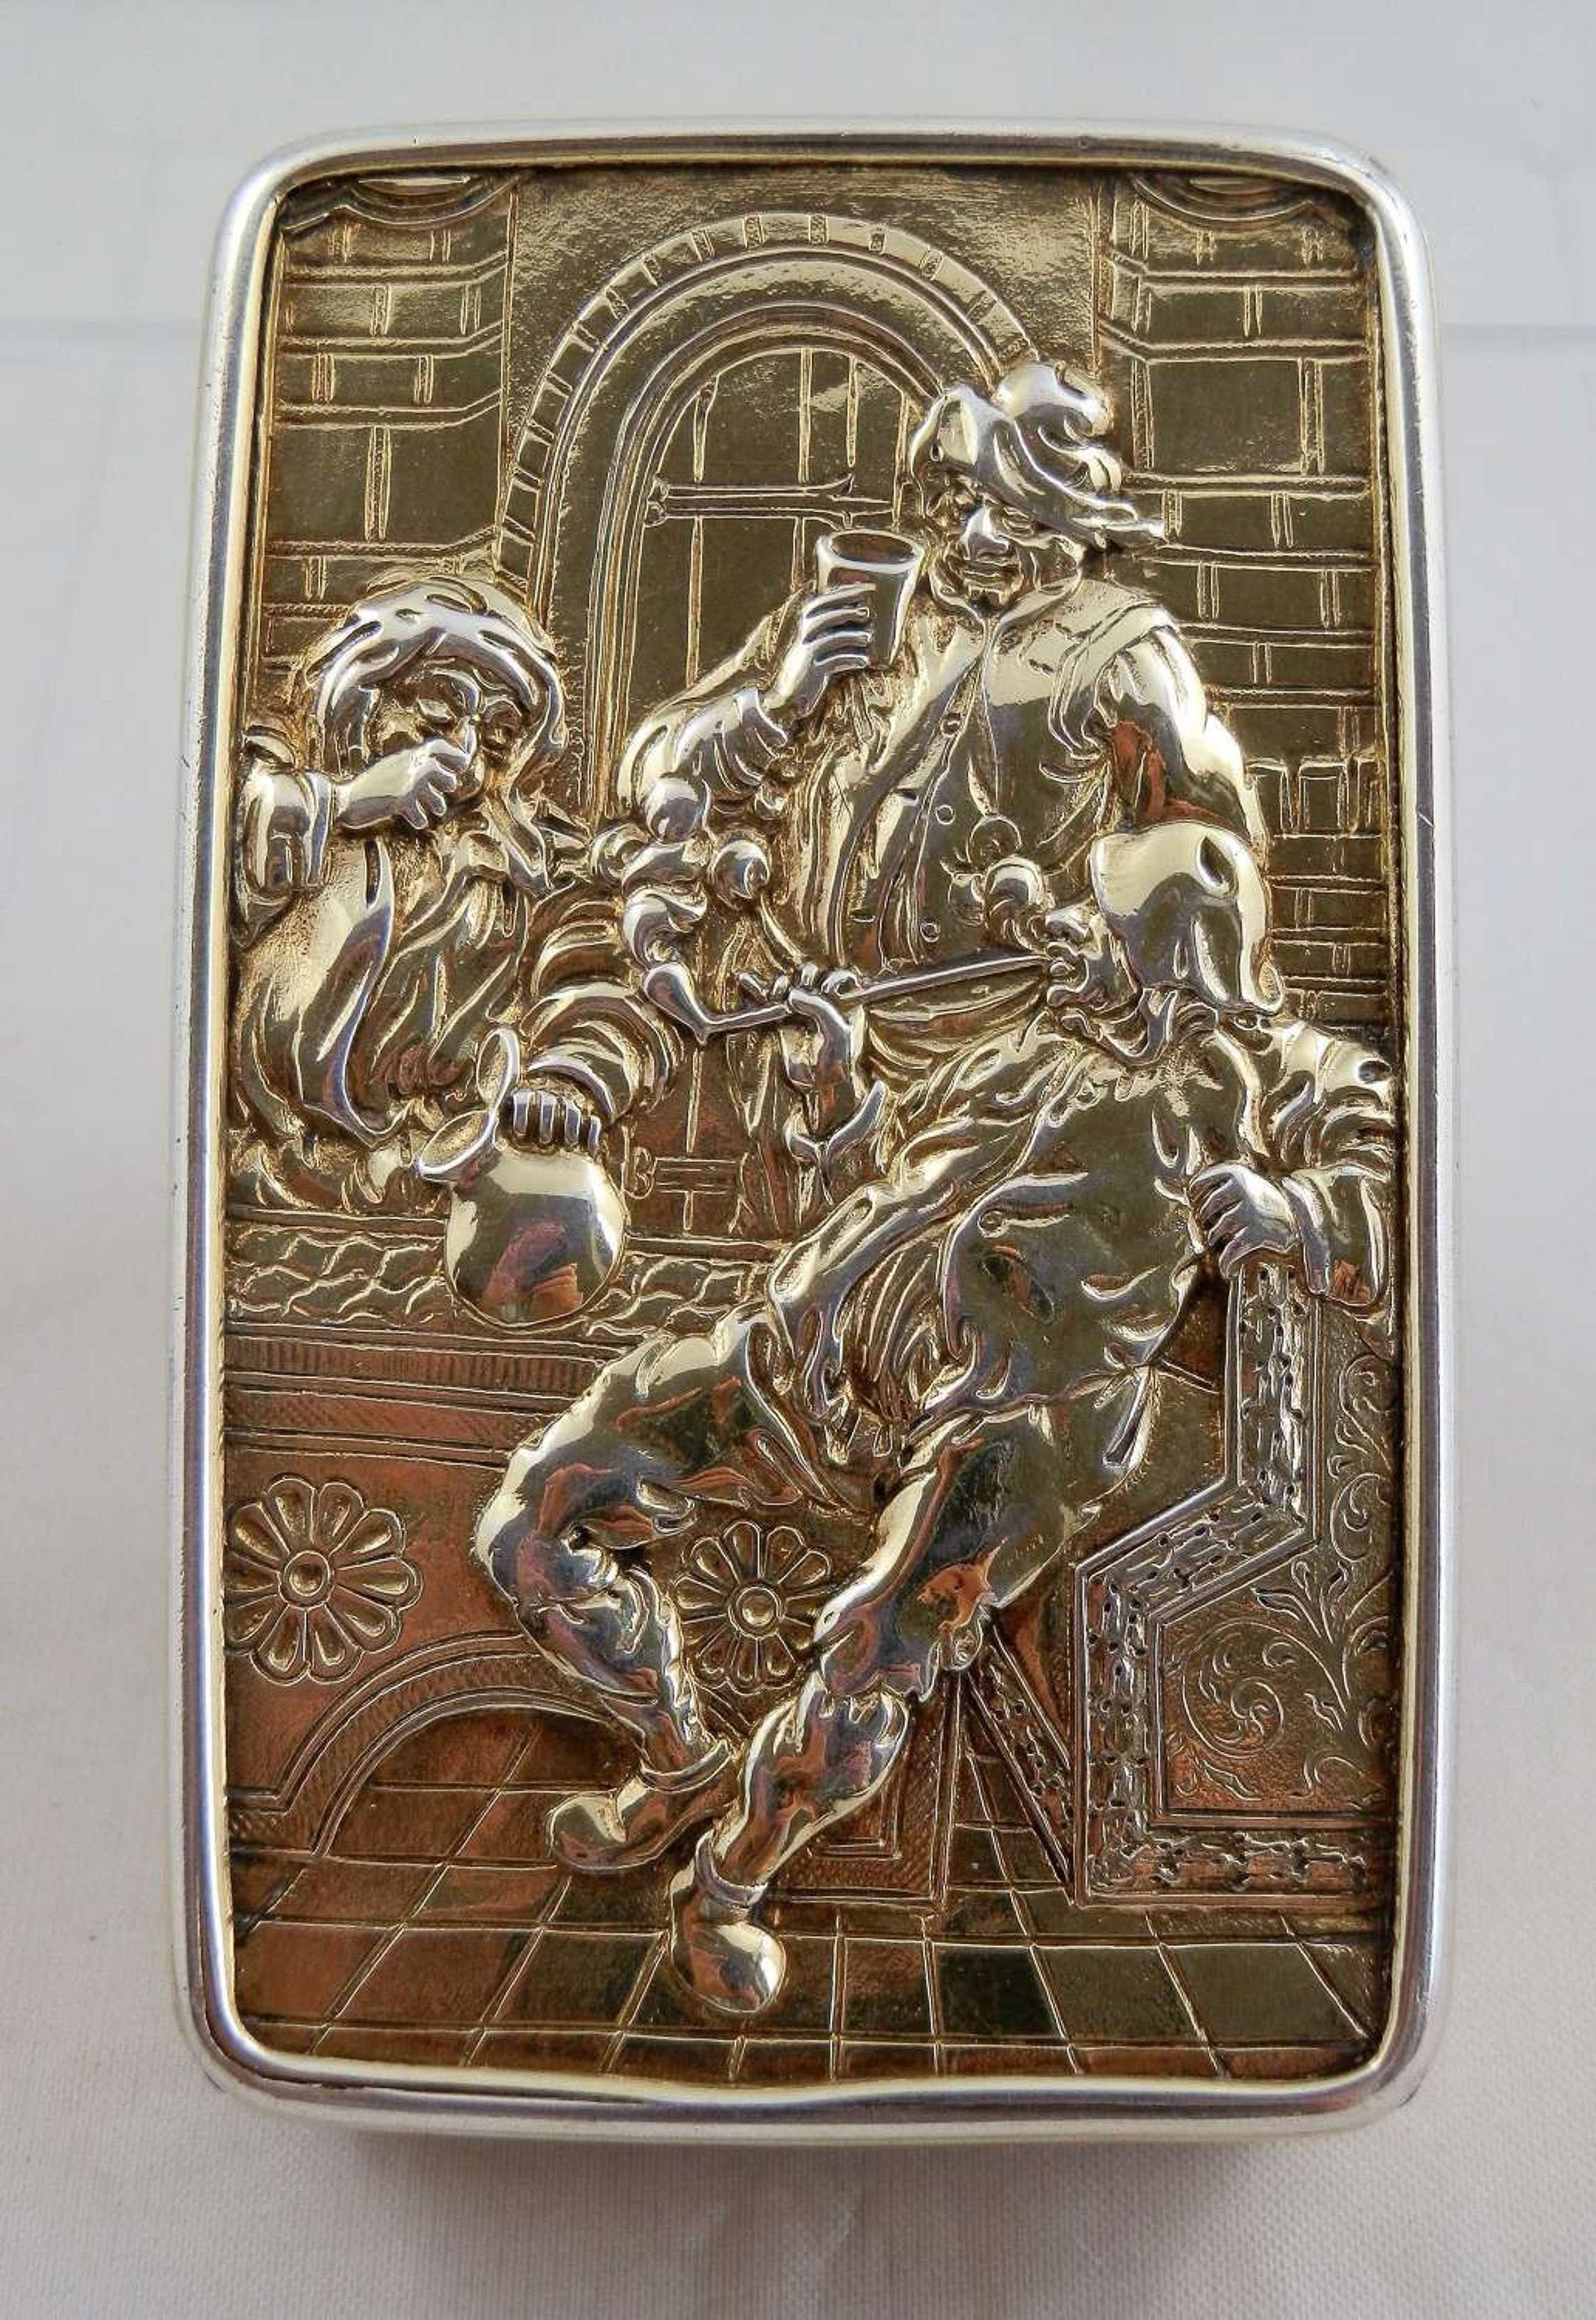 A rare George III silver gilt table snuff box. Alex. Strachan 1812